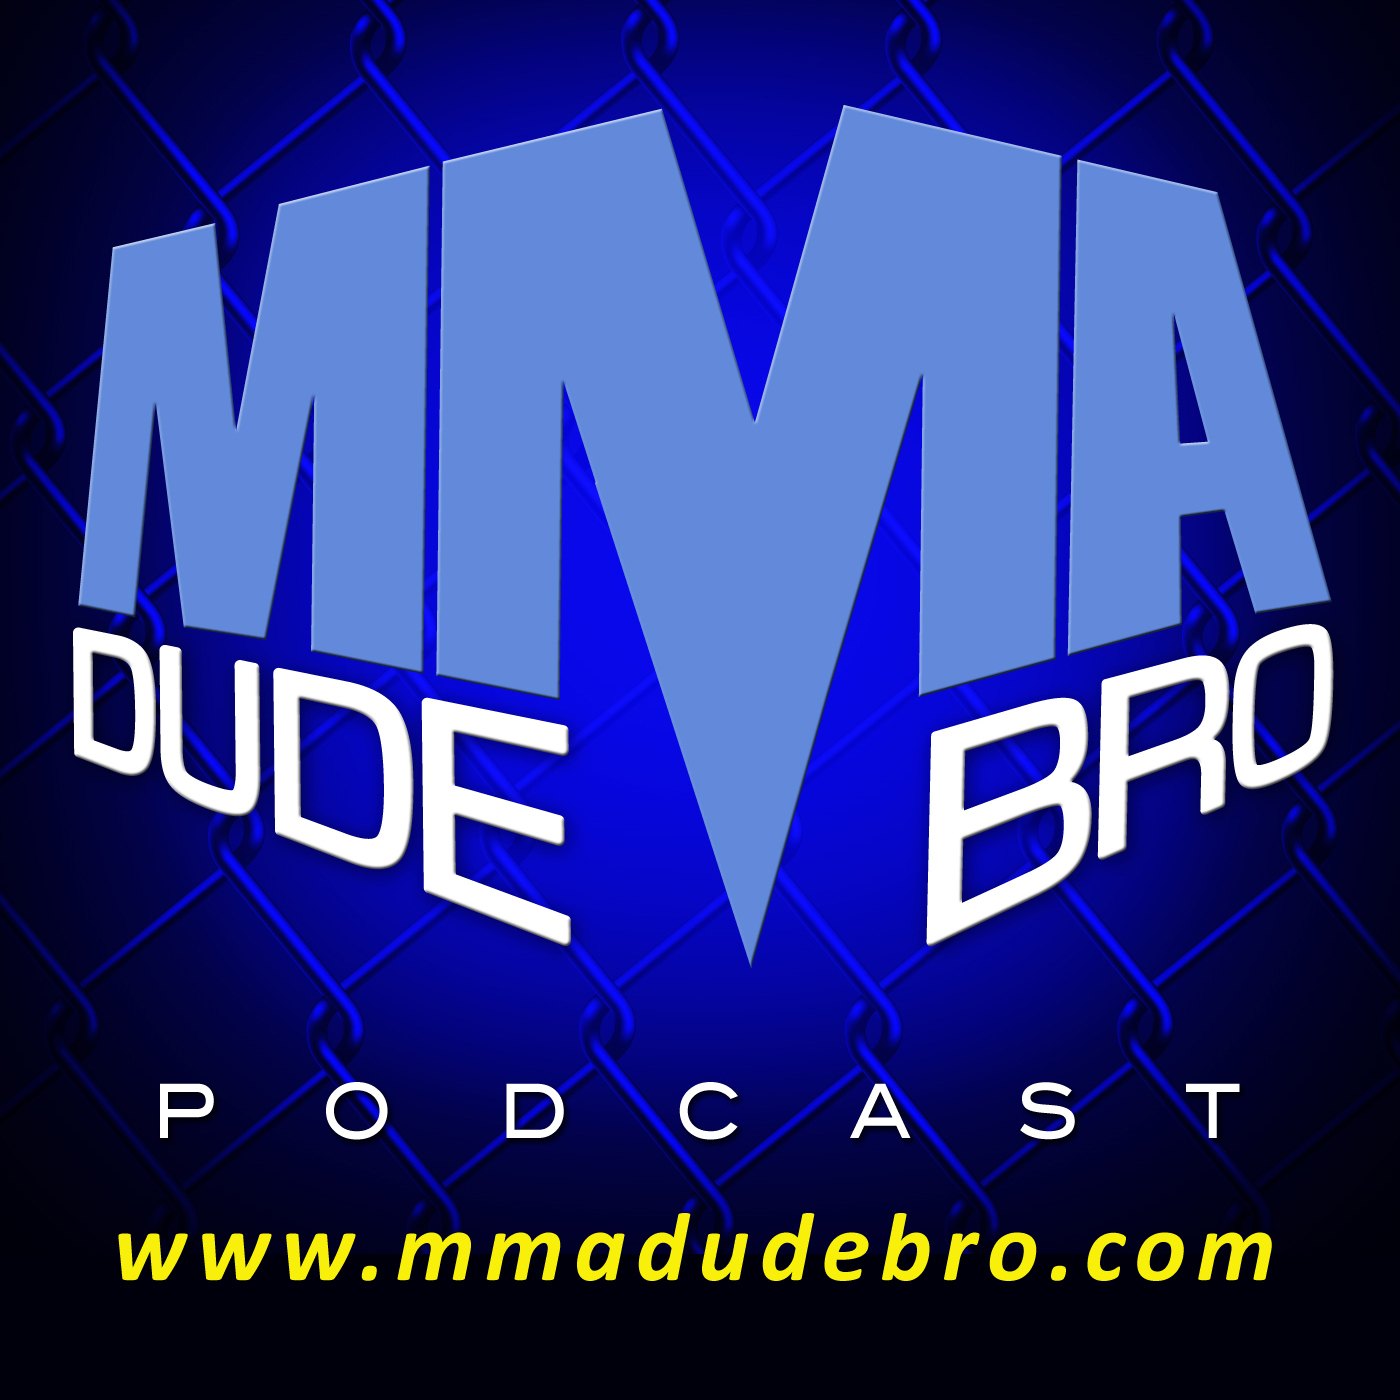 MMA Dude Bro - Episode 93 (with guests  Joe Riggs, Don Frye, Sean Wheelock & Burt Watson)